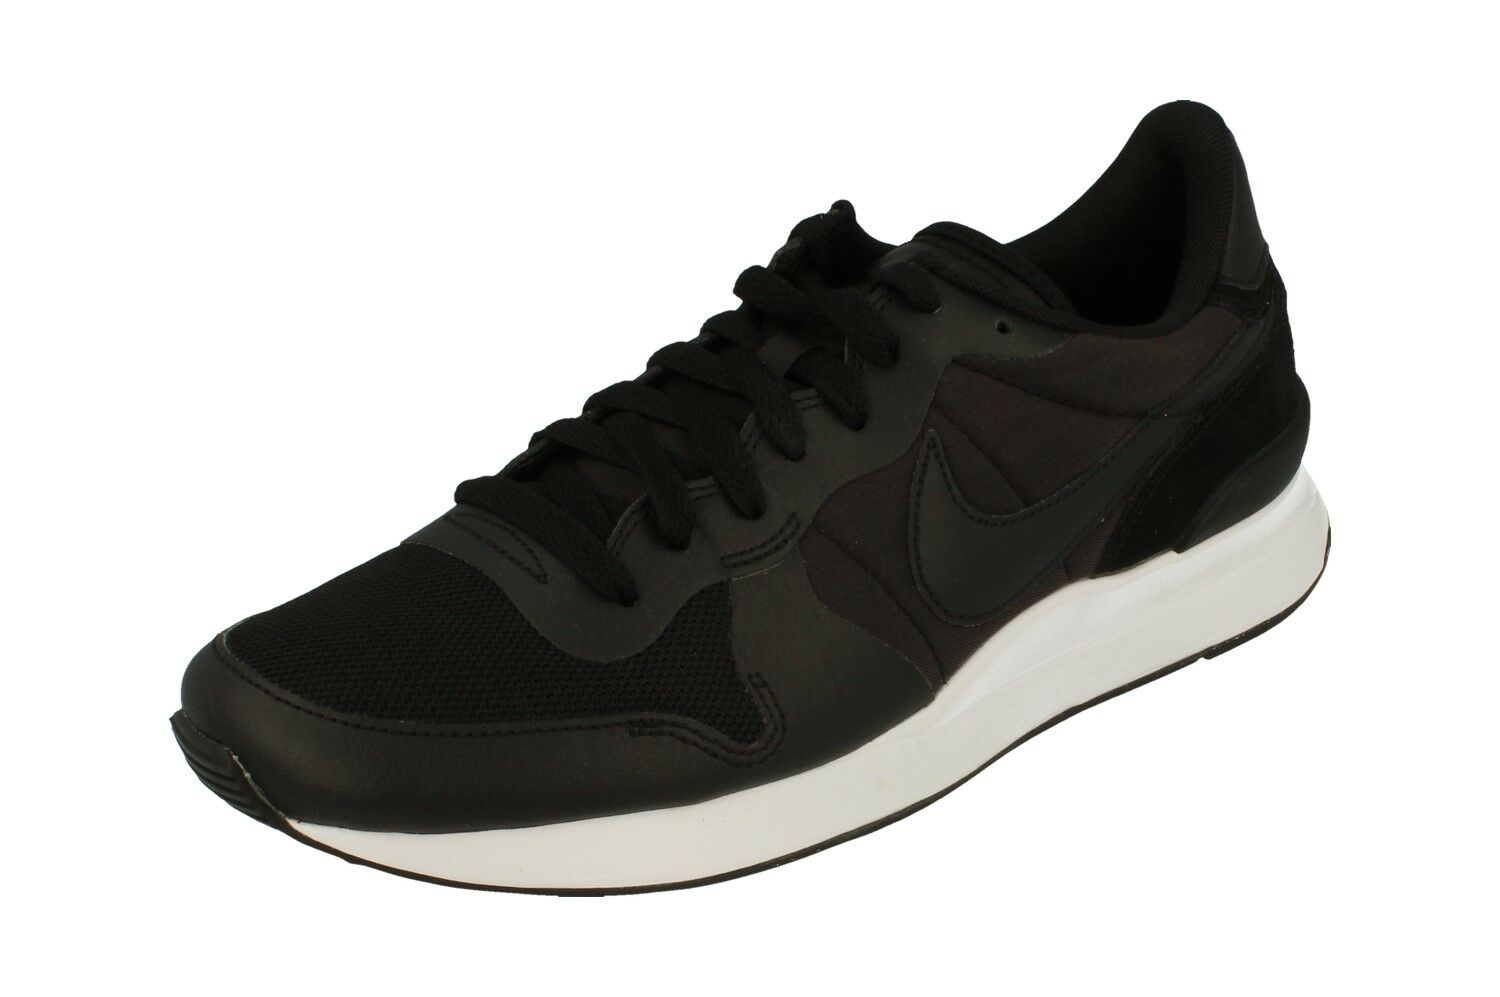 Nike Internationalist Lt17 Mens Running Trainers 872087 Sneakers Shoes 002